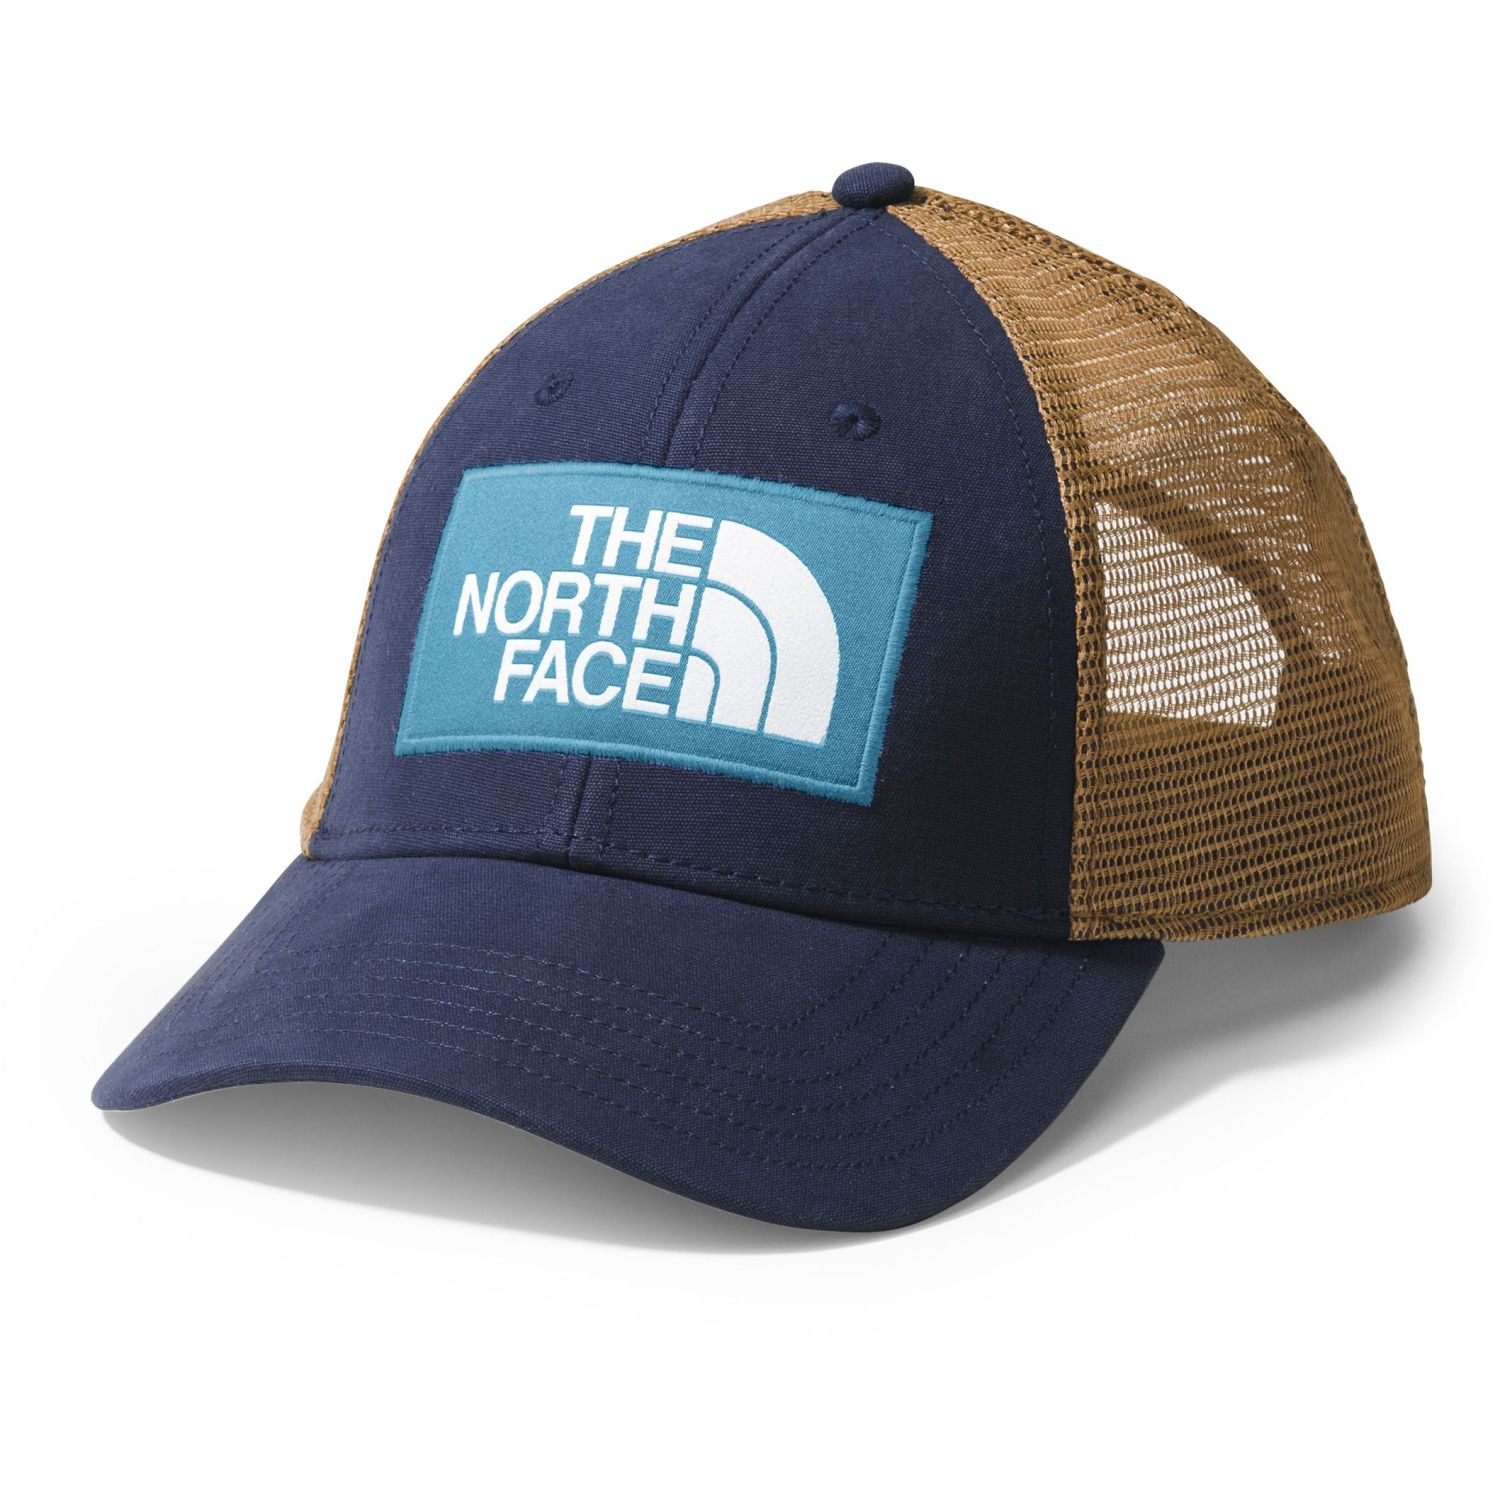 The North Face Mudder Trucker Hat Azul Gorras de béisbol